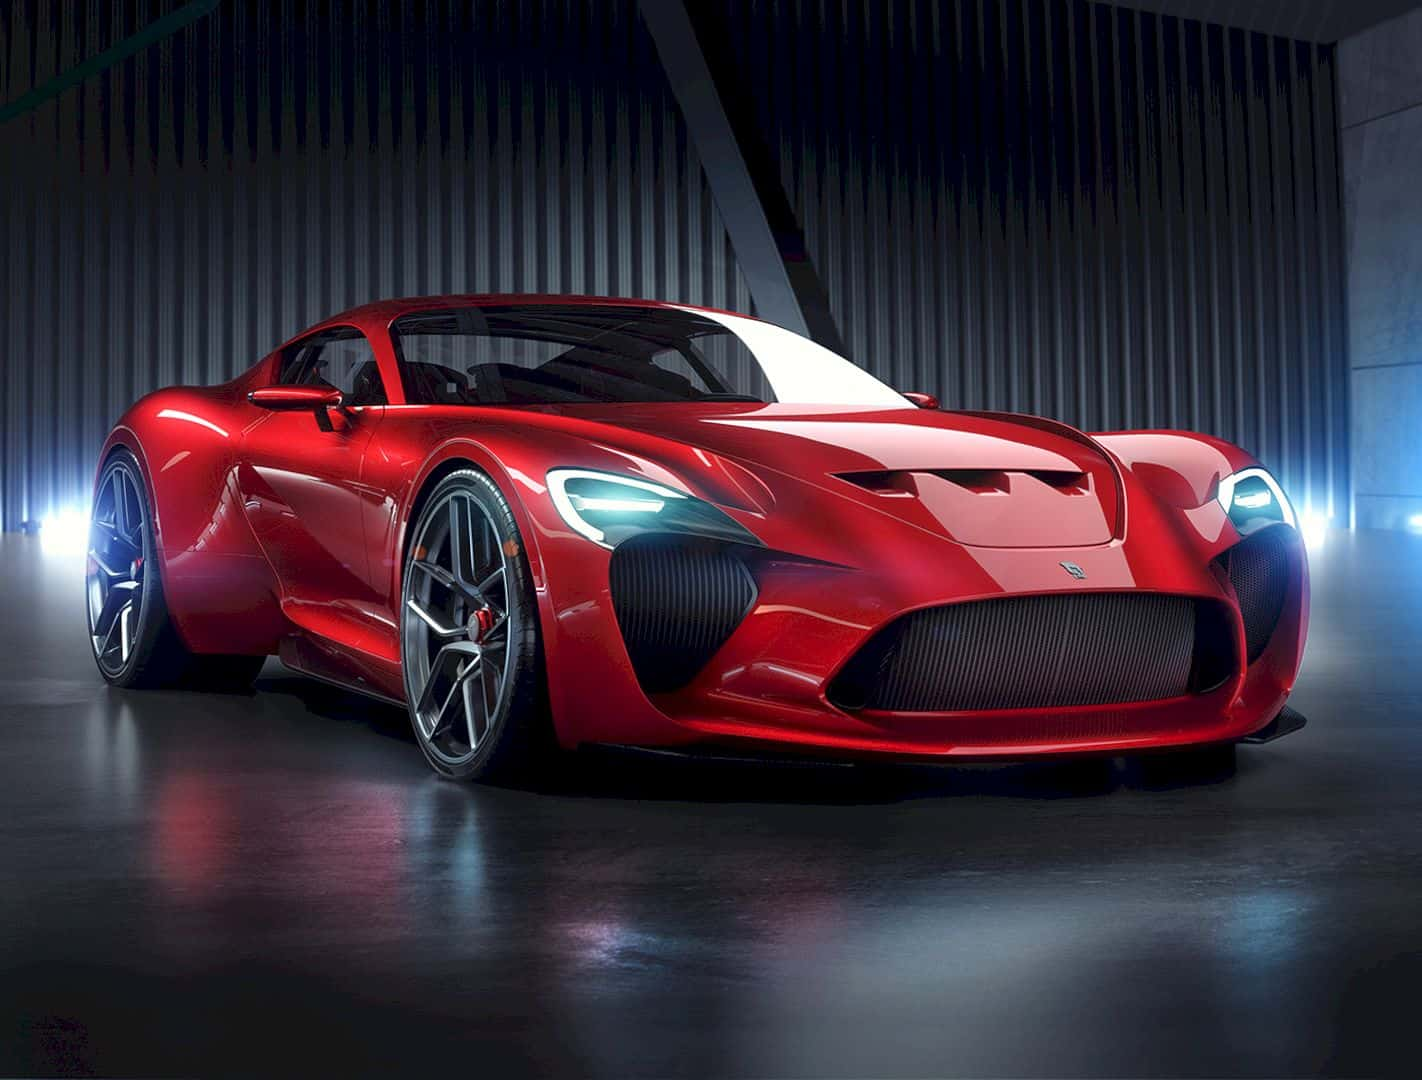 Get on the Stunning Ferrari 612 GTO III Renderings by Sergey Dvornytskyy for Sasha Selipanov